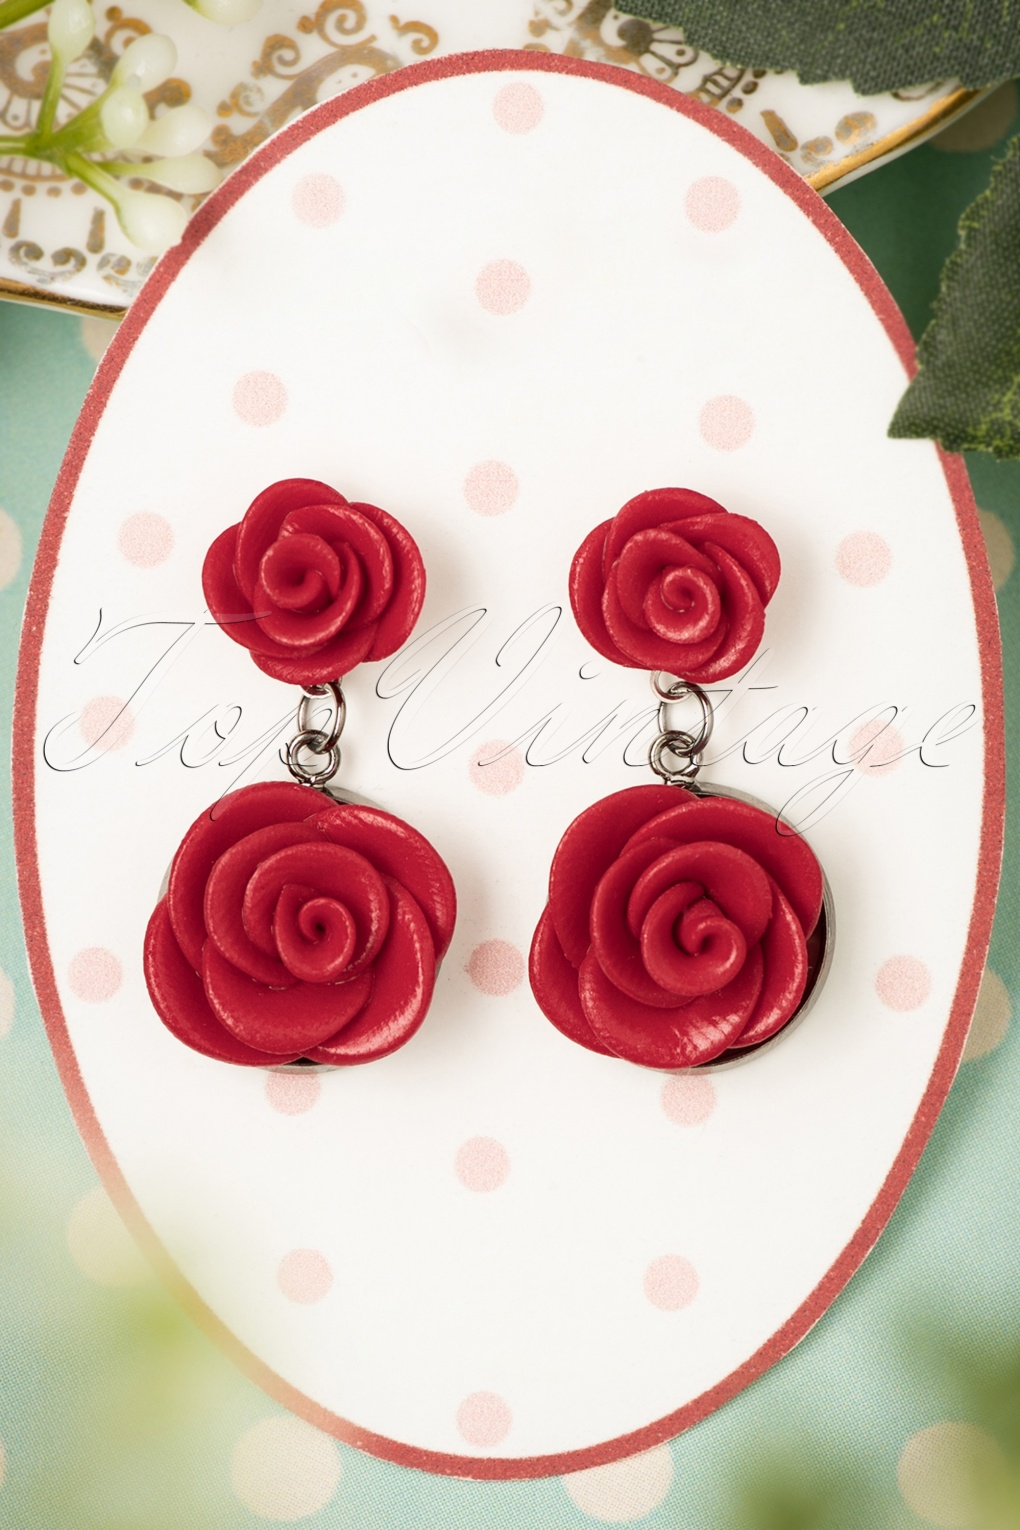 New 1940s Costume Jewelry: Necklaces, Earrings, Pins 40s Romantic Red Roses Earrings £13.56 AT vintagedancer.com